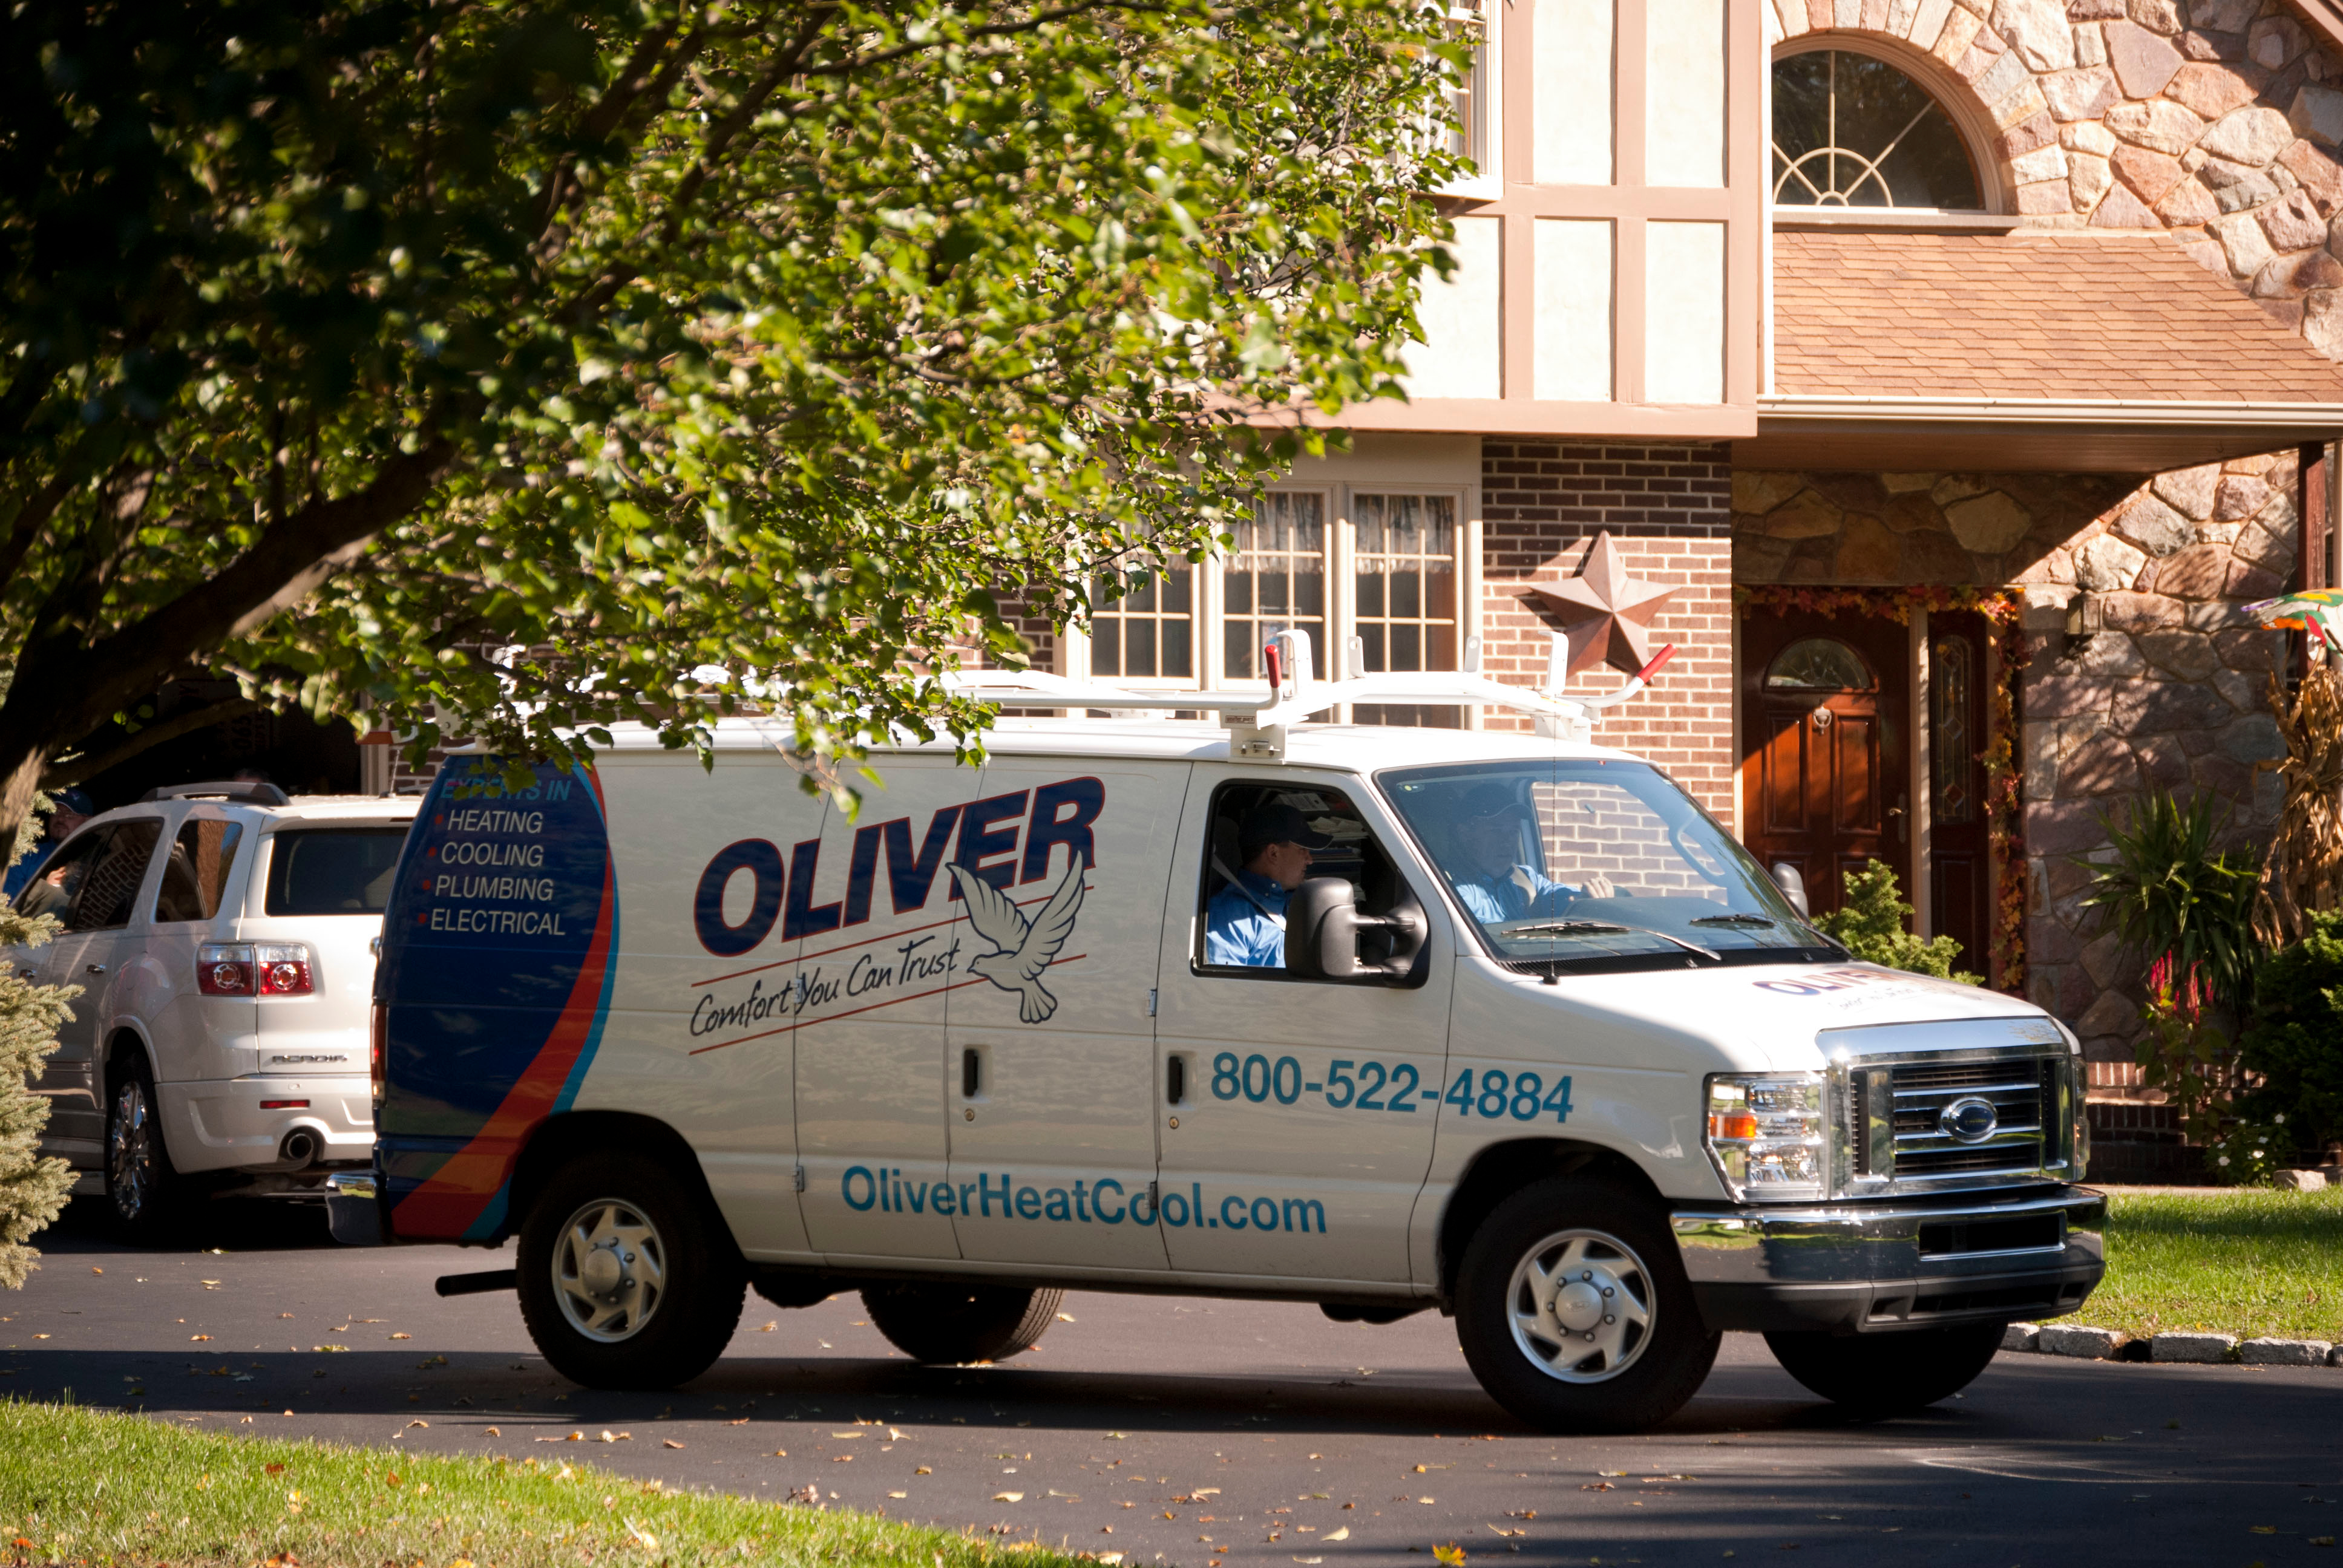 Plumbing And Heating Oliver Plumbing And Heating